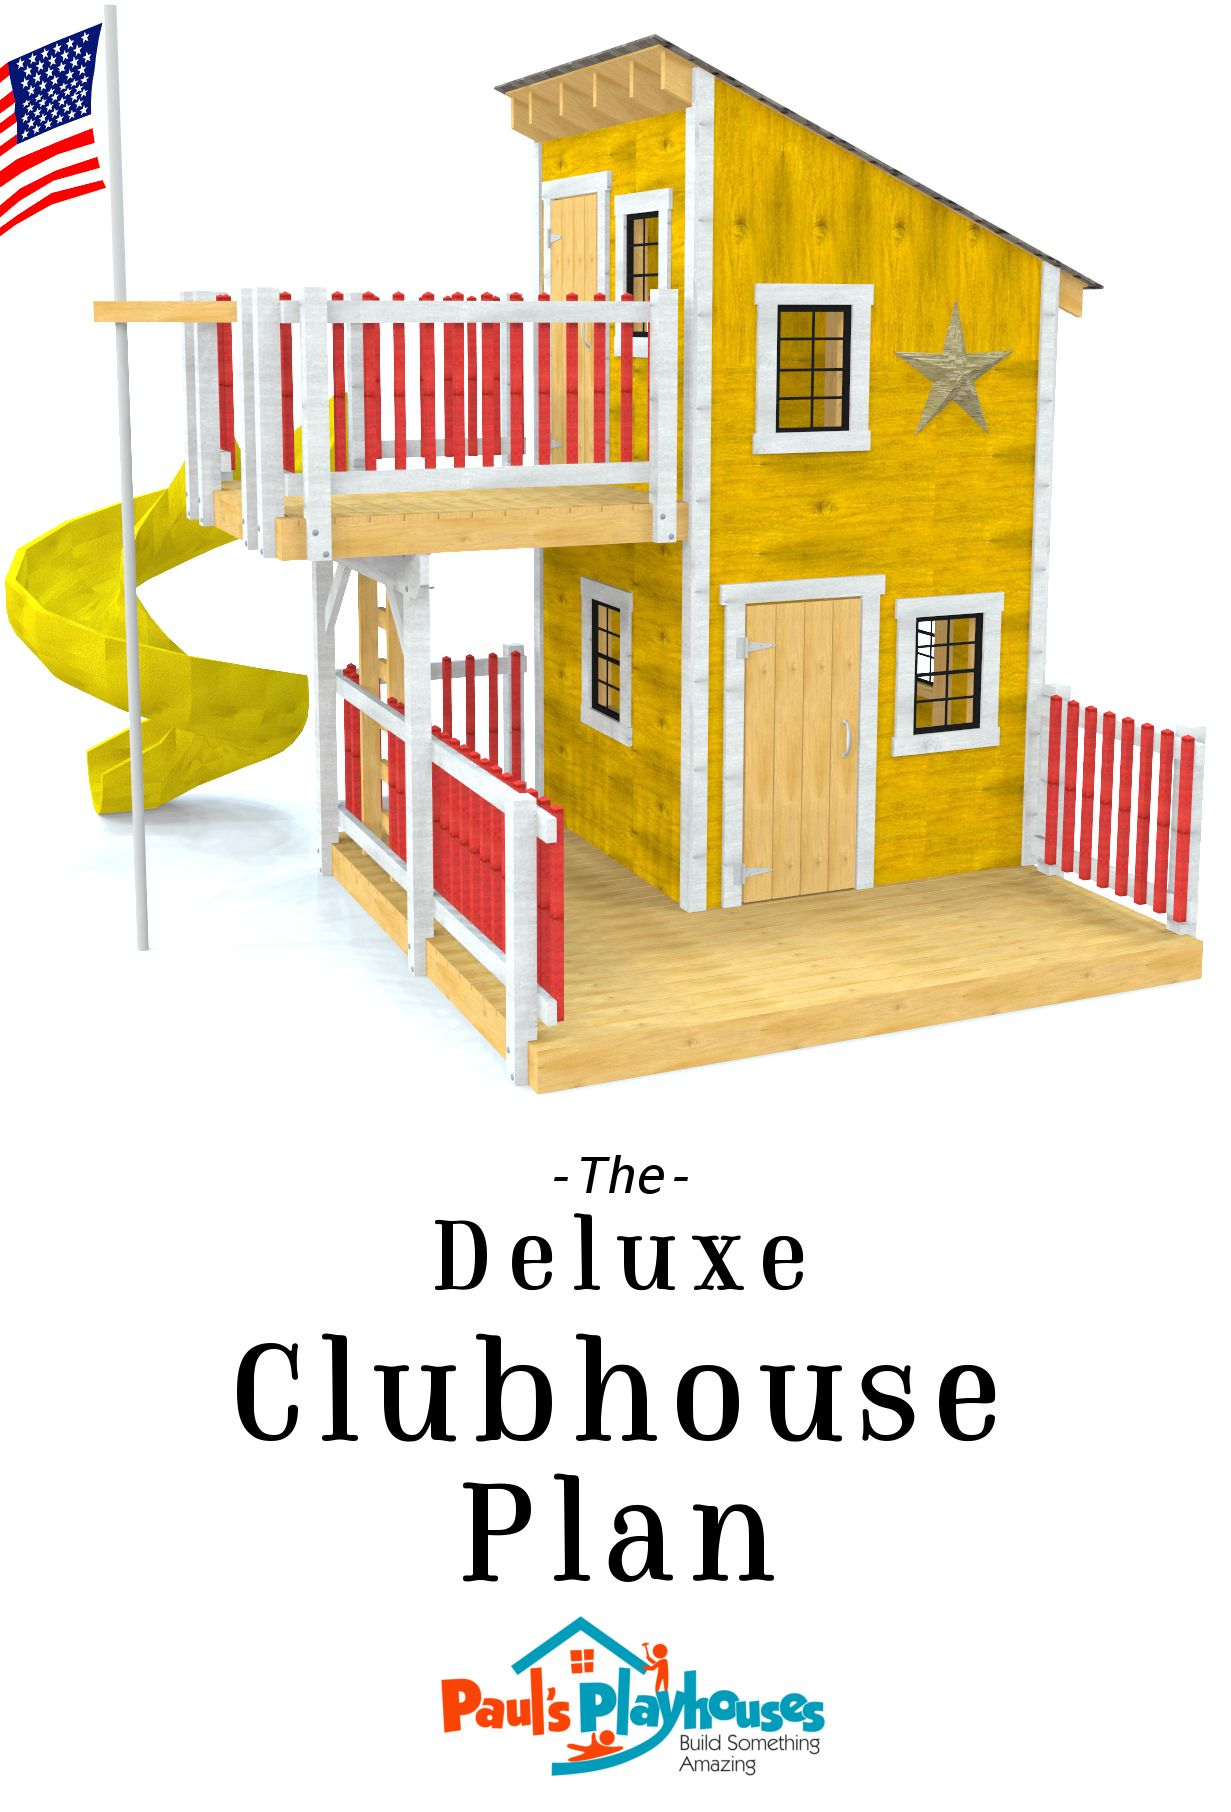 Deluxe Loft Clubhouse Plan in 2019 | archdraw | Kids playhouse plans on tree house plans with loft, playhouse plans with storage, barn plans with loft, high ceiling loft, playhouse with loft and porch, playhouse with deck, playhouse plans with porch, floor plans with loft, playhouse loft ladder, playhouse with slide plans, playhouse plans and blueprints, garage plans with loft,